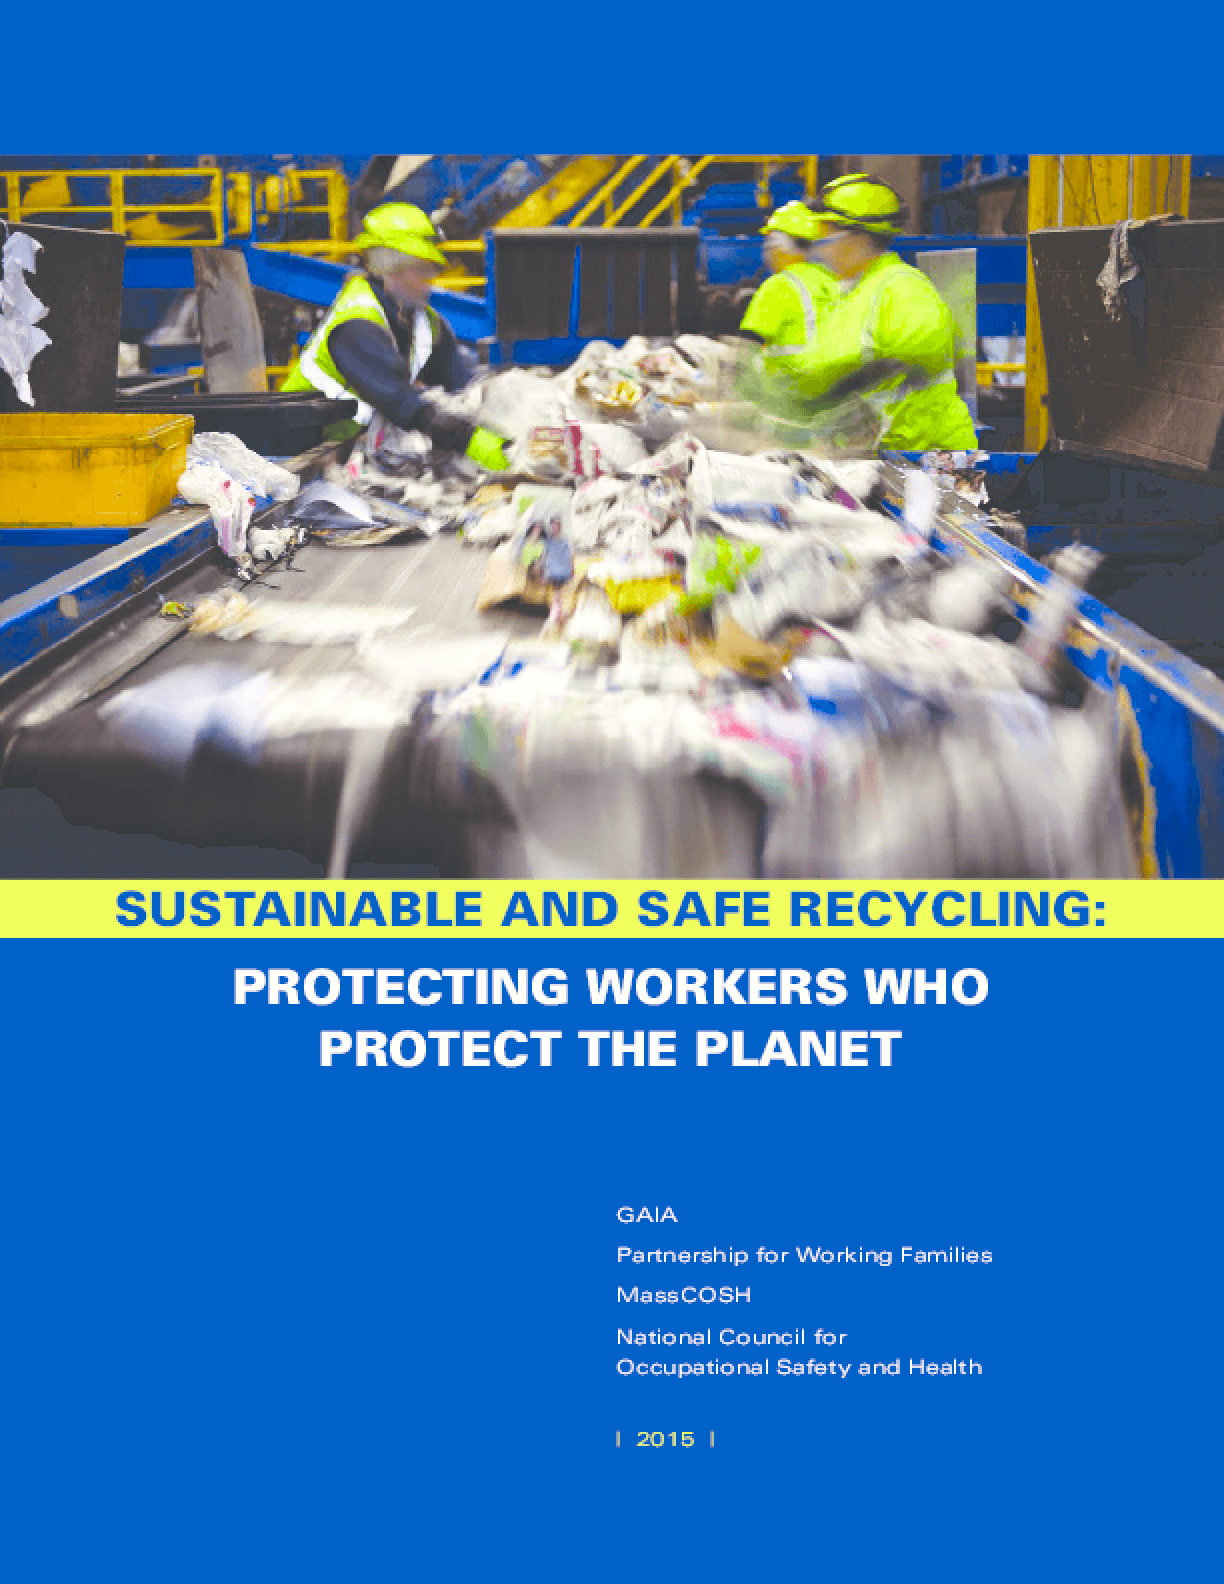 Sustainable and Safe Recycling: Protecting Workers Who Protect The Planet